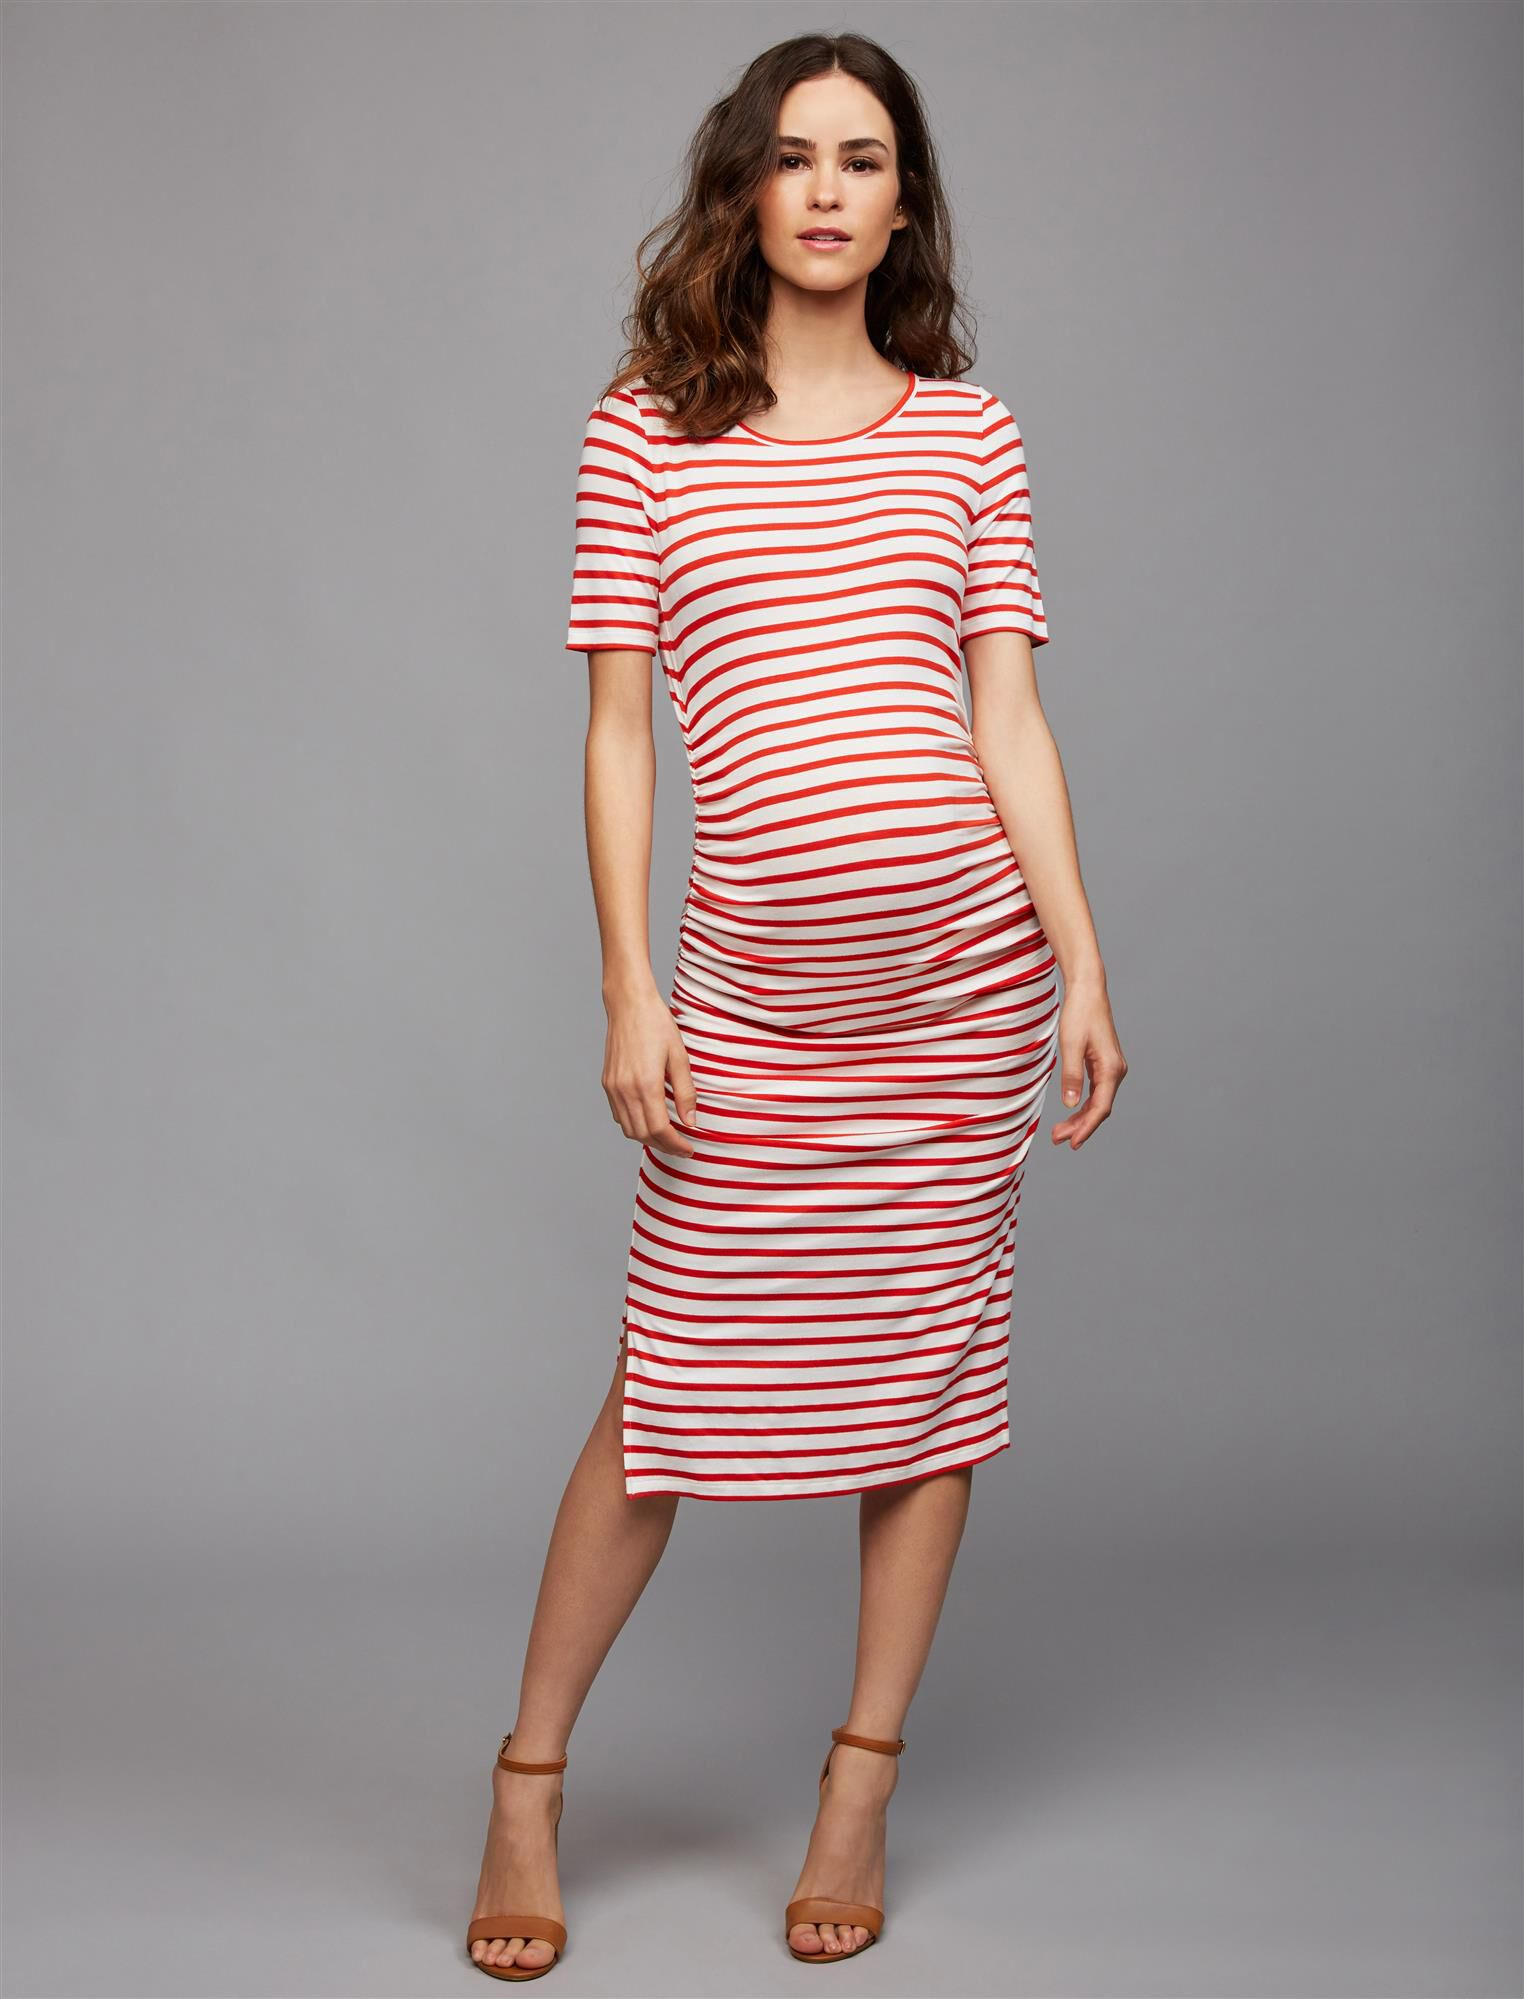 Isabella Oliver Nia Maternity Dress